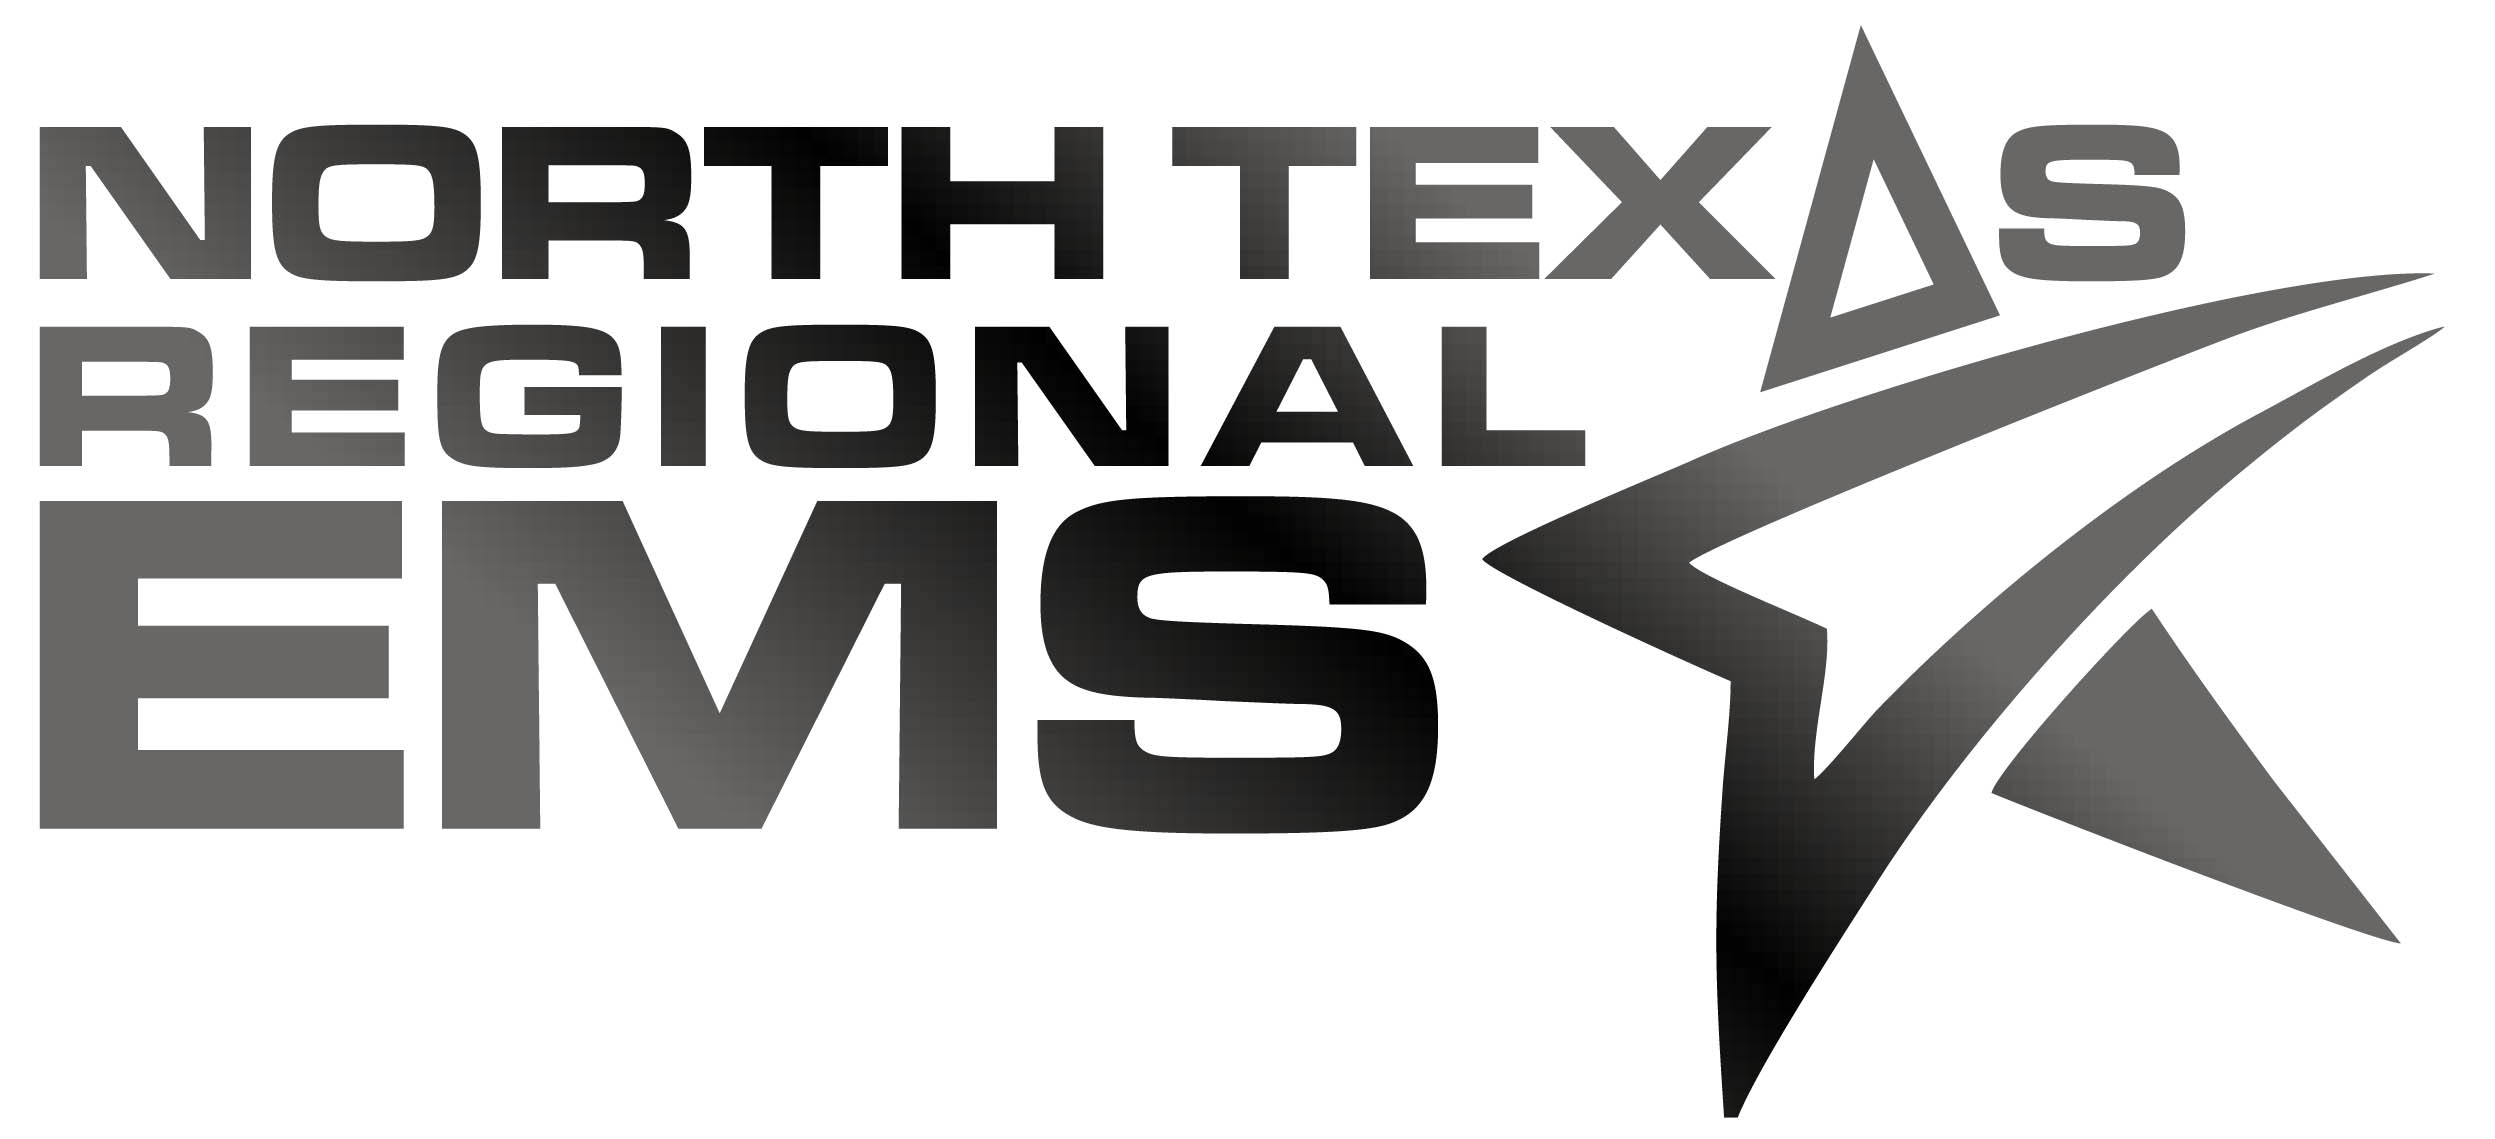 North-Texas-Regional-EMS-logo